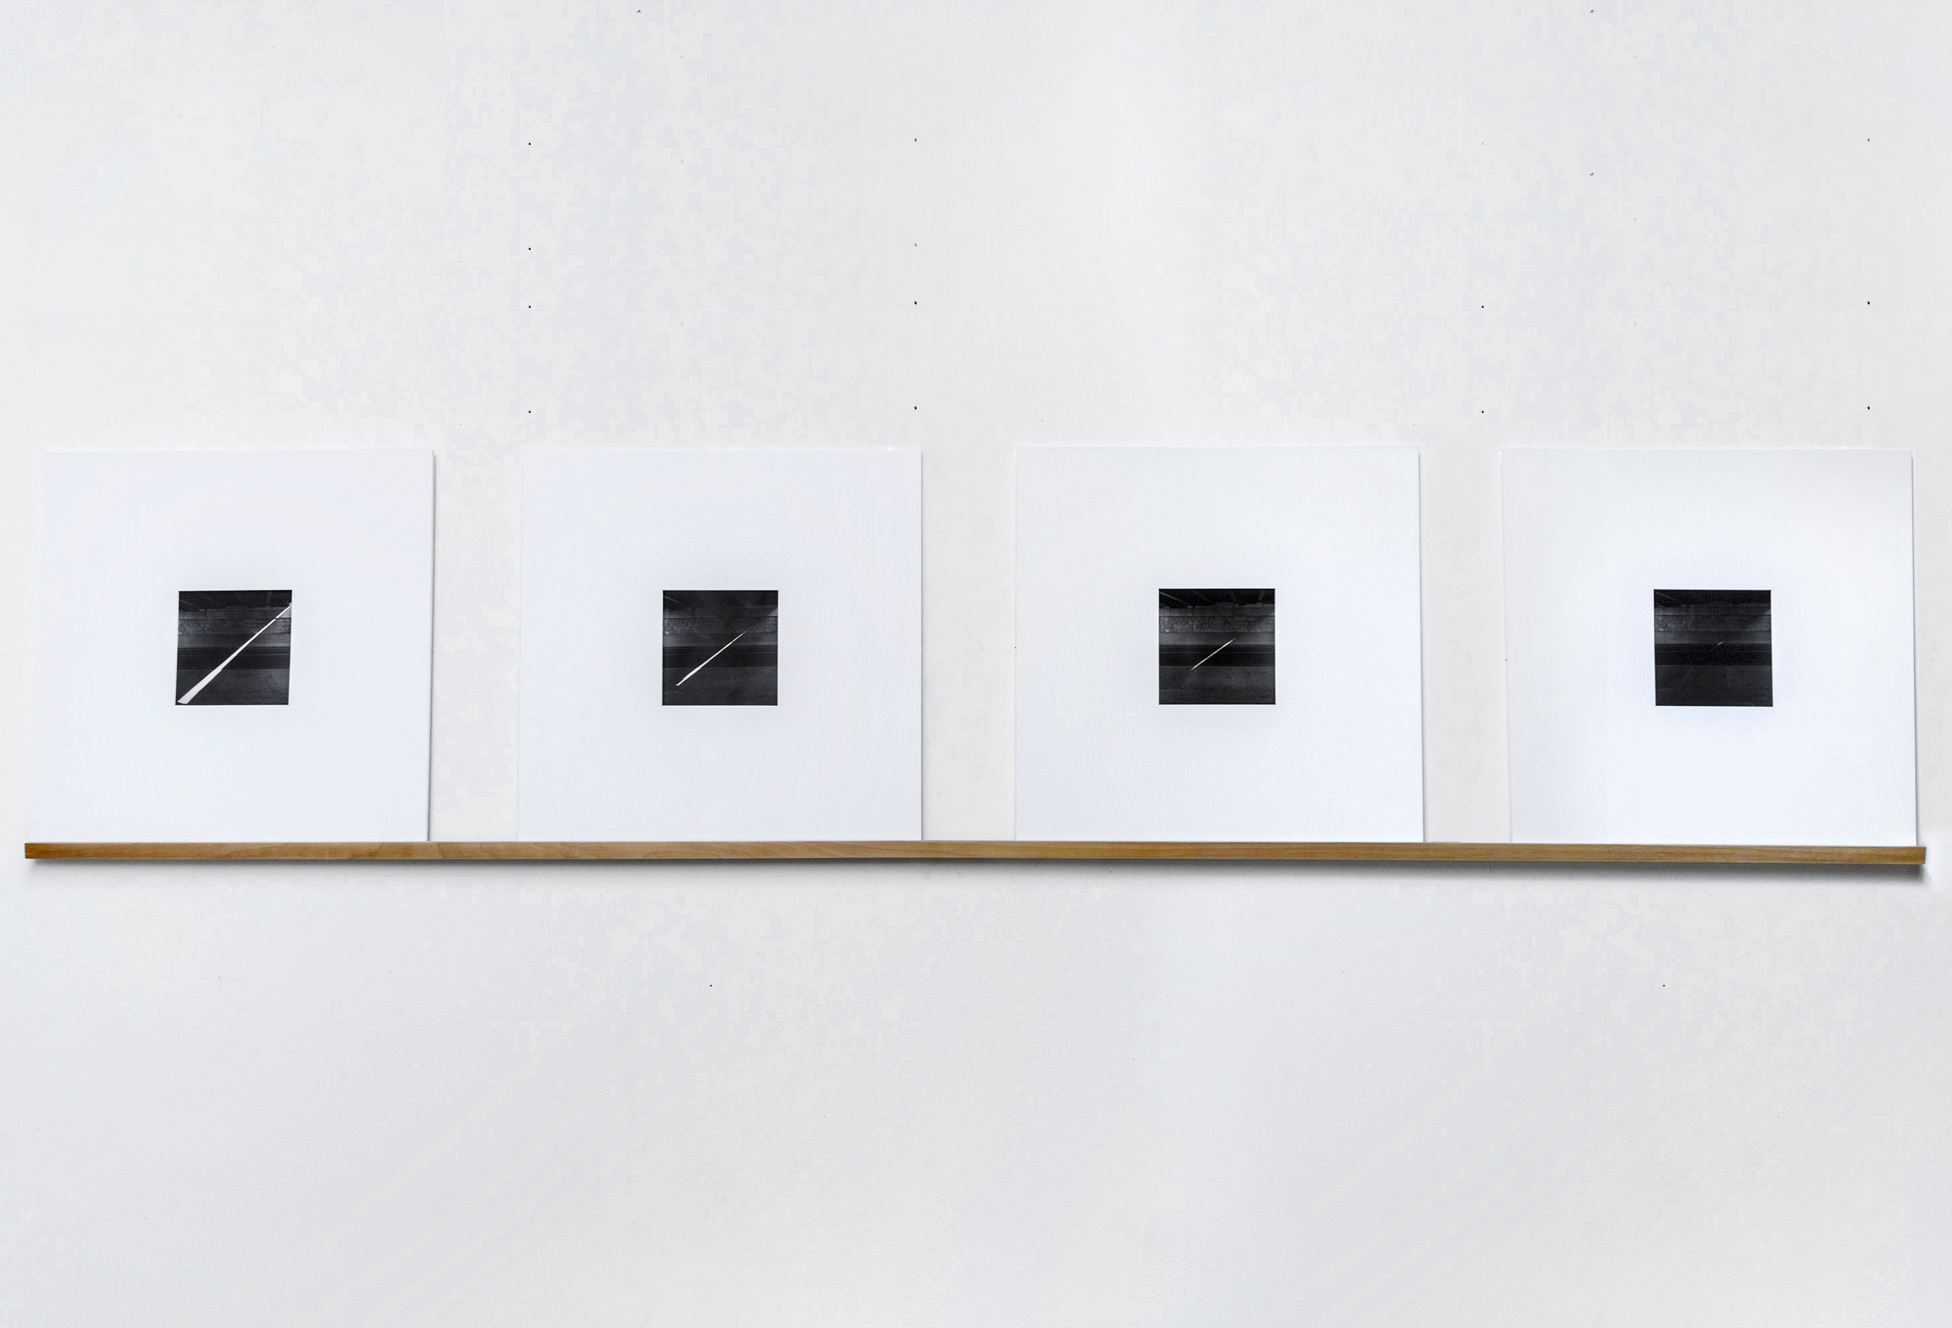 "Half of an Hour , 20"" x 20"" each, series of 4 silver gelatin photographs taken from one viewpoint (documenting a sliver of light) with an interval of 10 minutes between each photograph. Silver gelatin photographs, mat board, wood shelf. 2013"